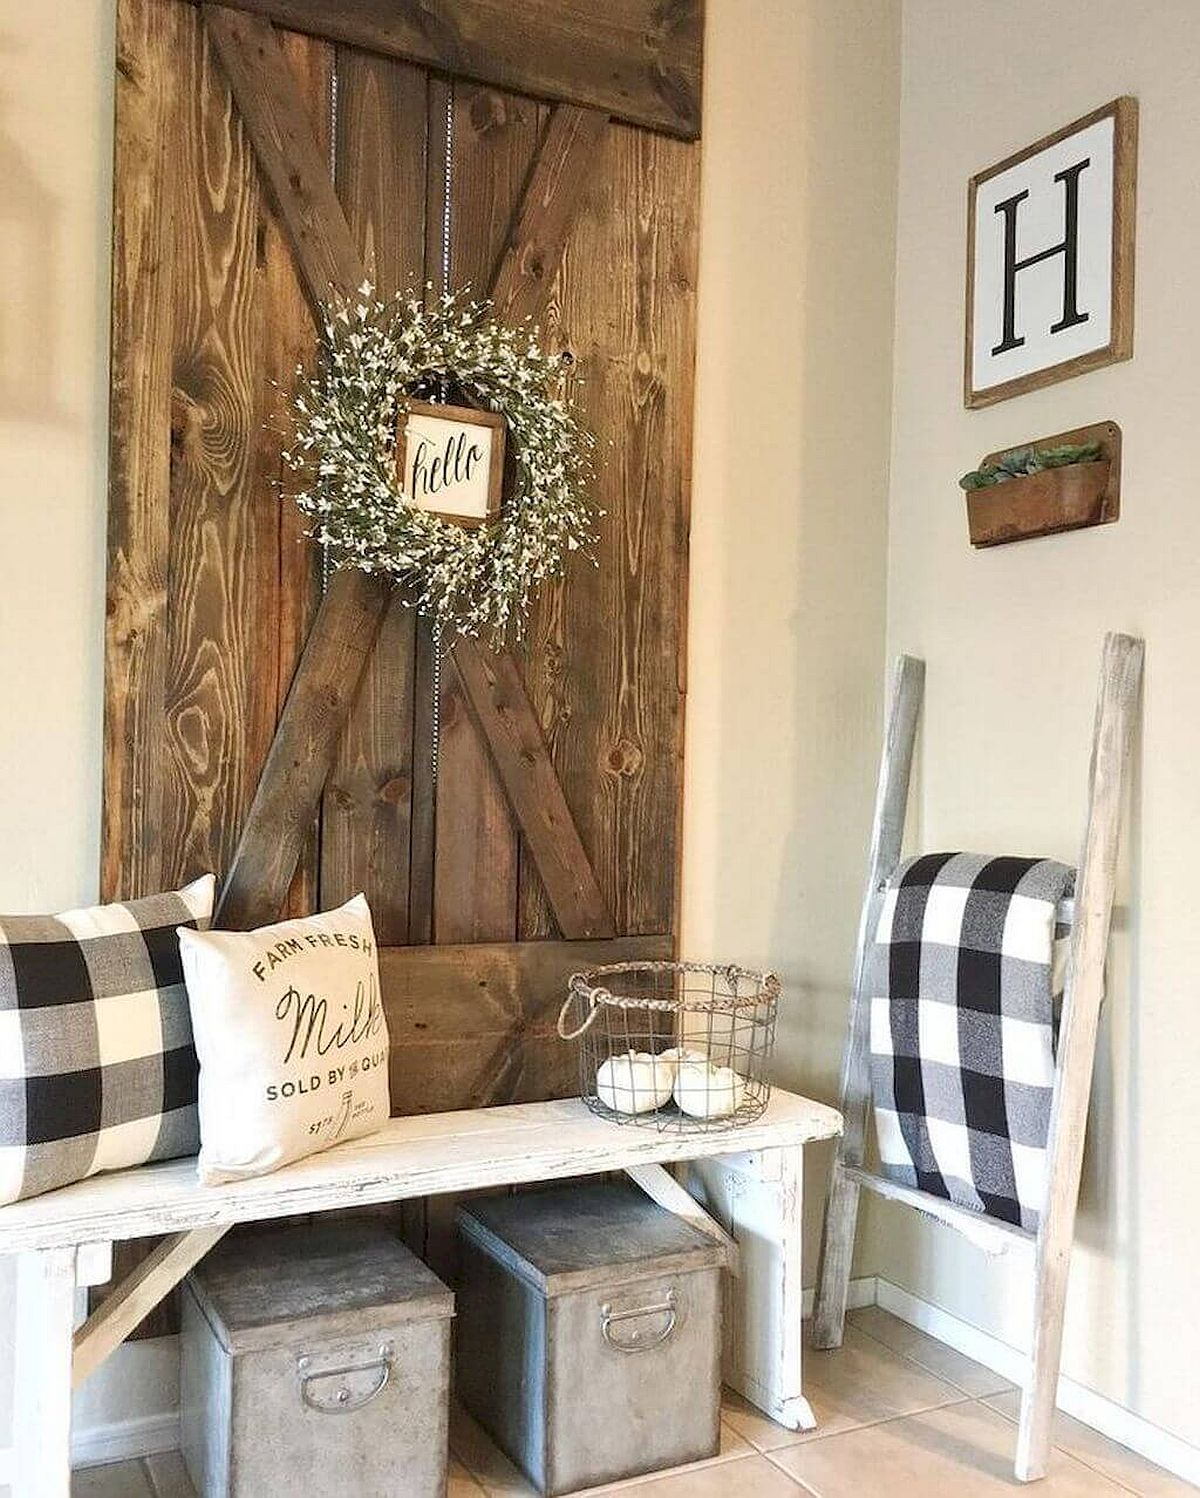 Reclaimed wooden bench and old barn door are used to decorate this modern rustic entryway